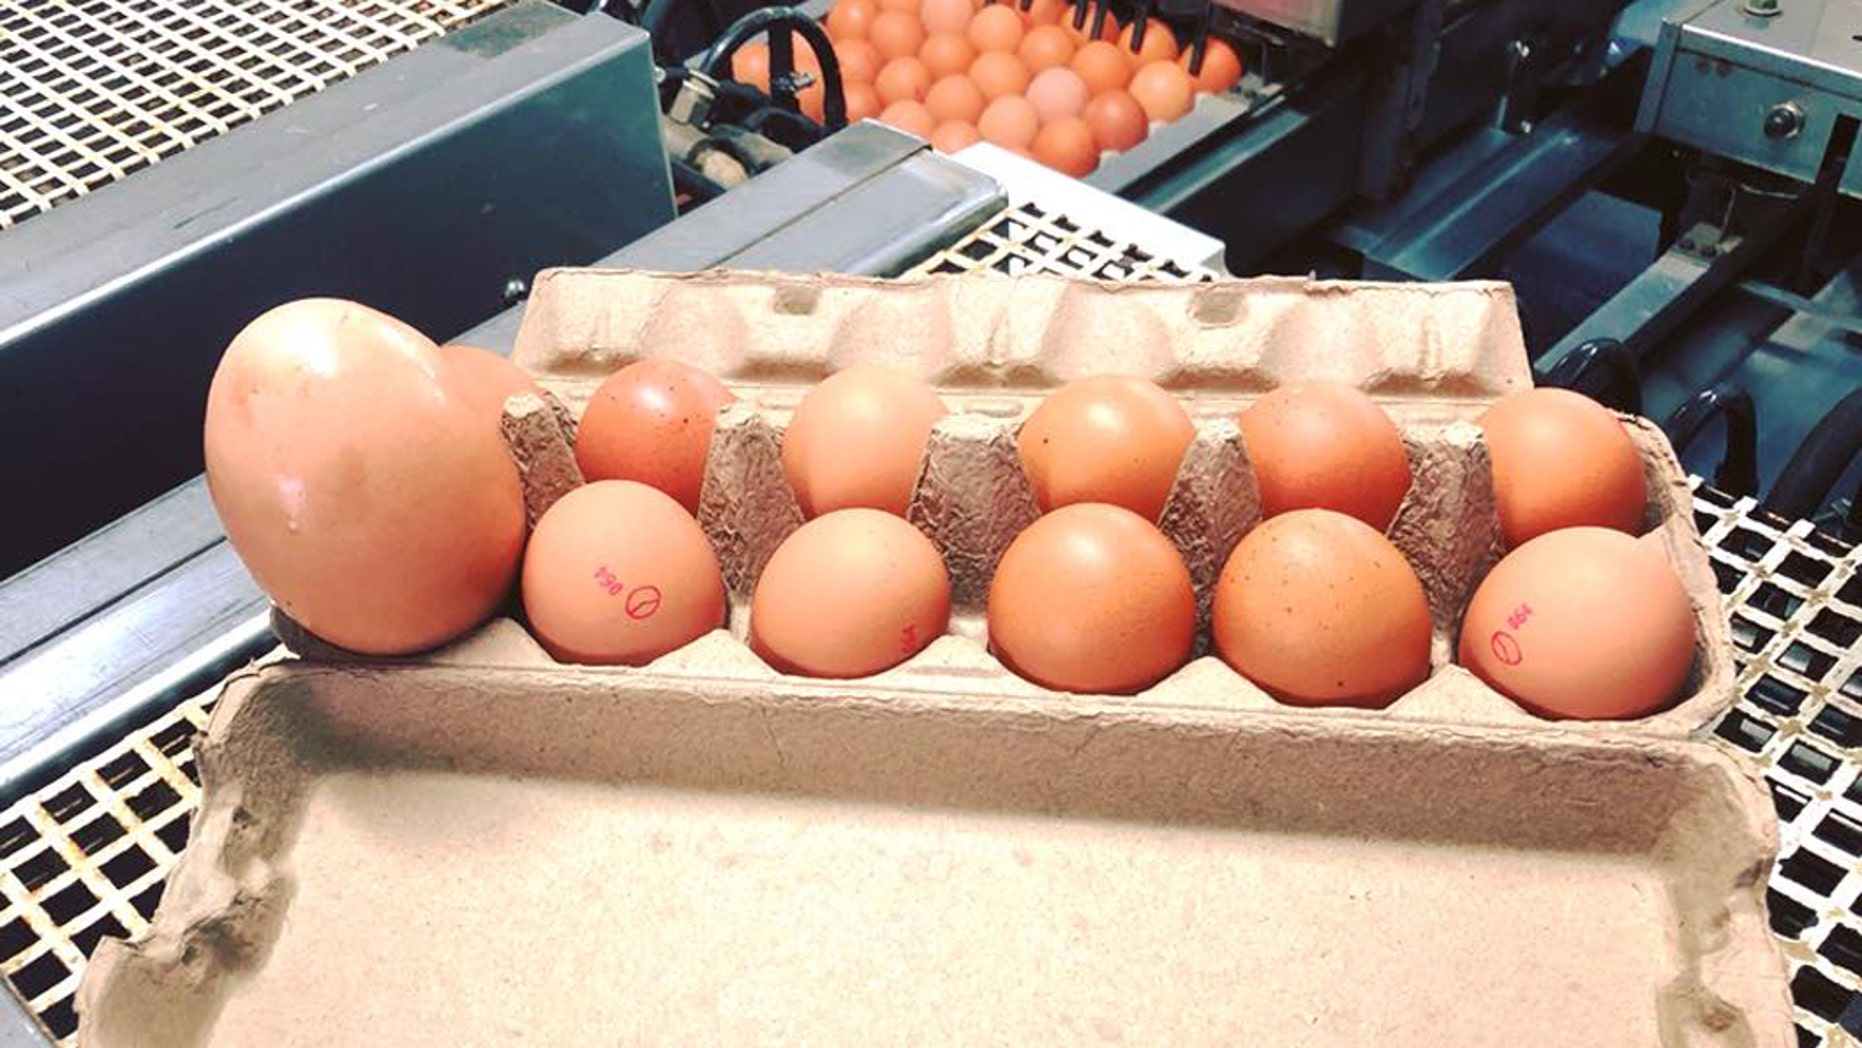 A picture of the giant egg next to normal sized eggs. (Credit: Stockman's Eggs, Facebook)